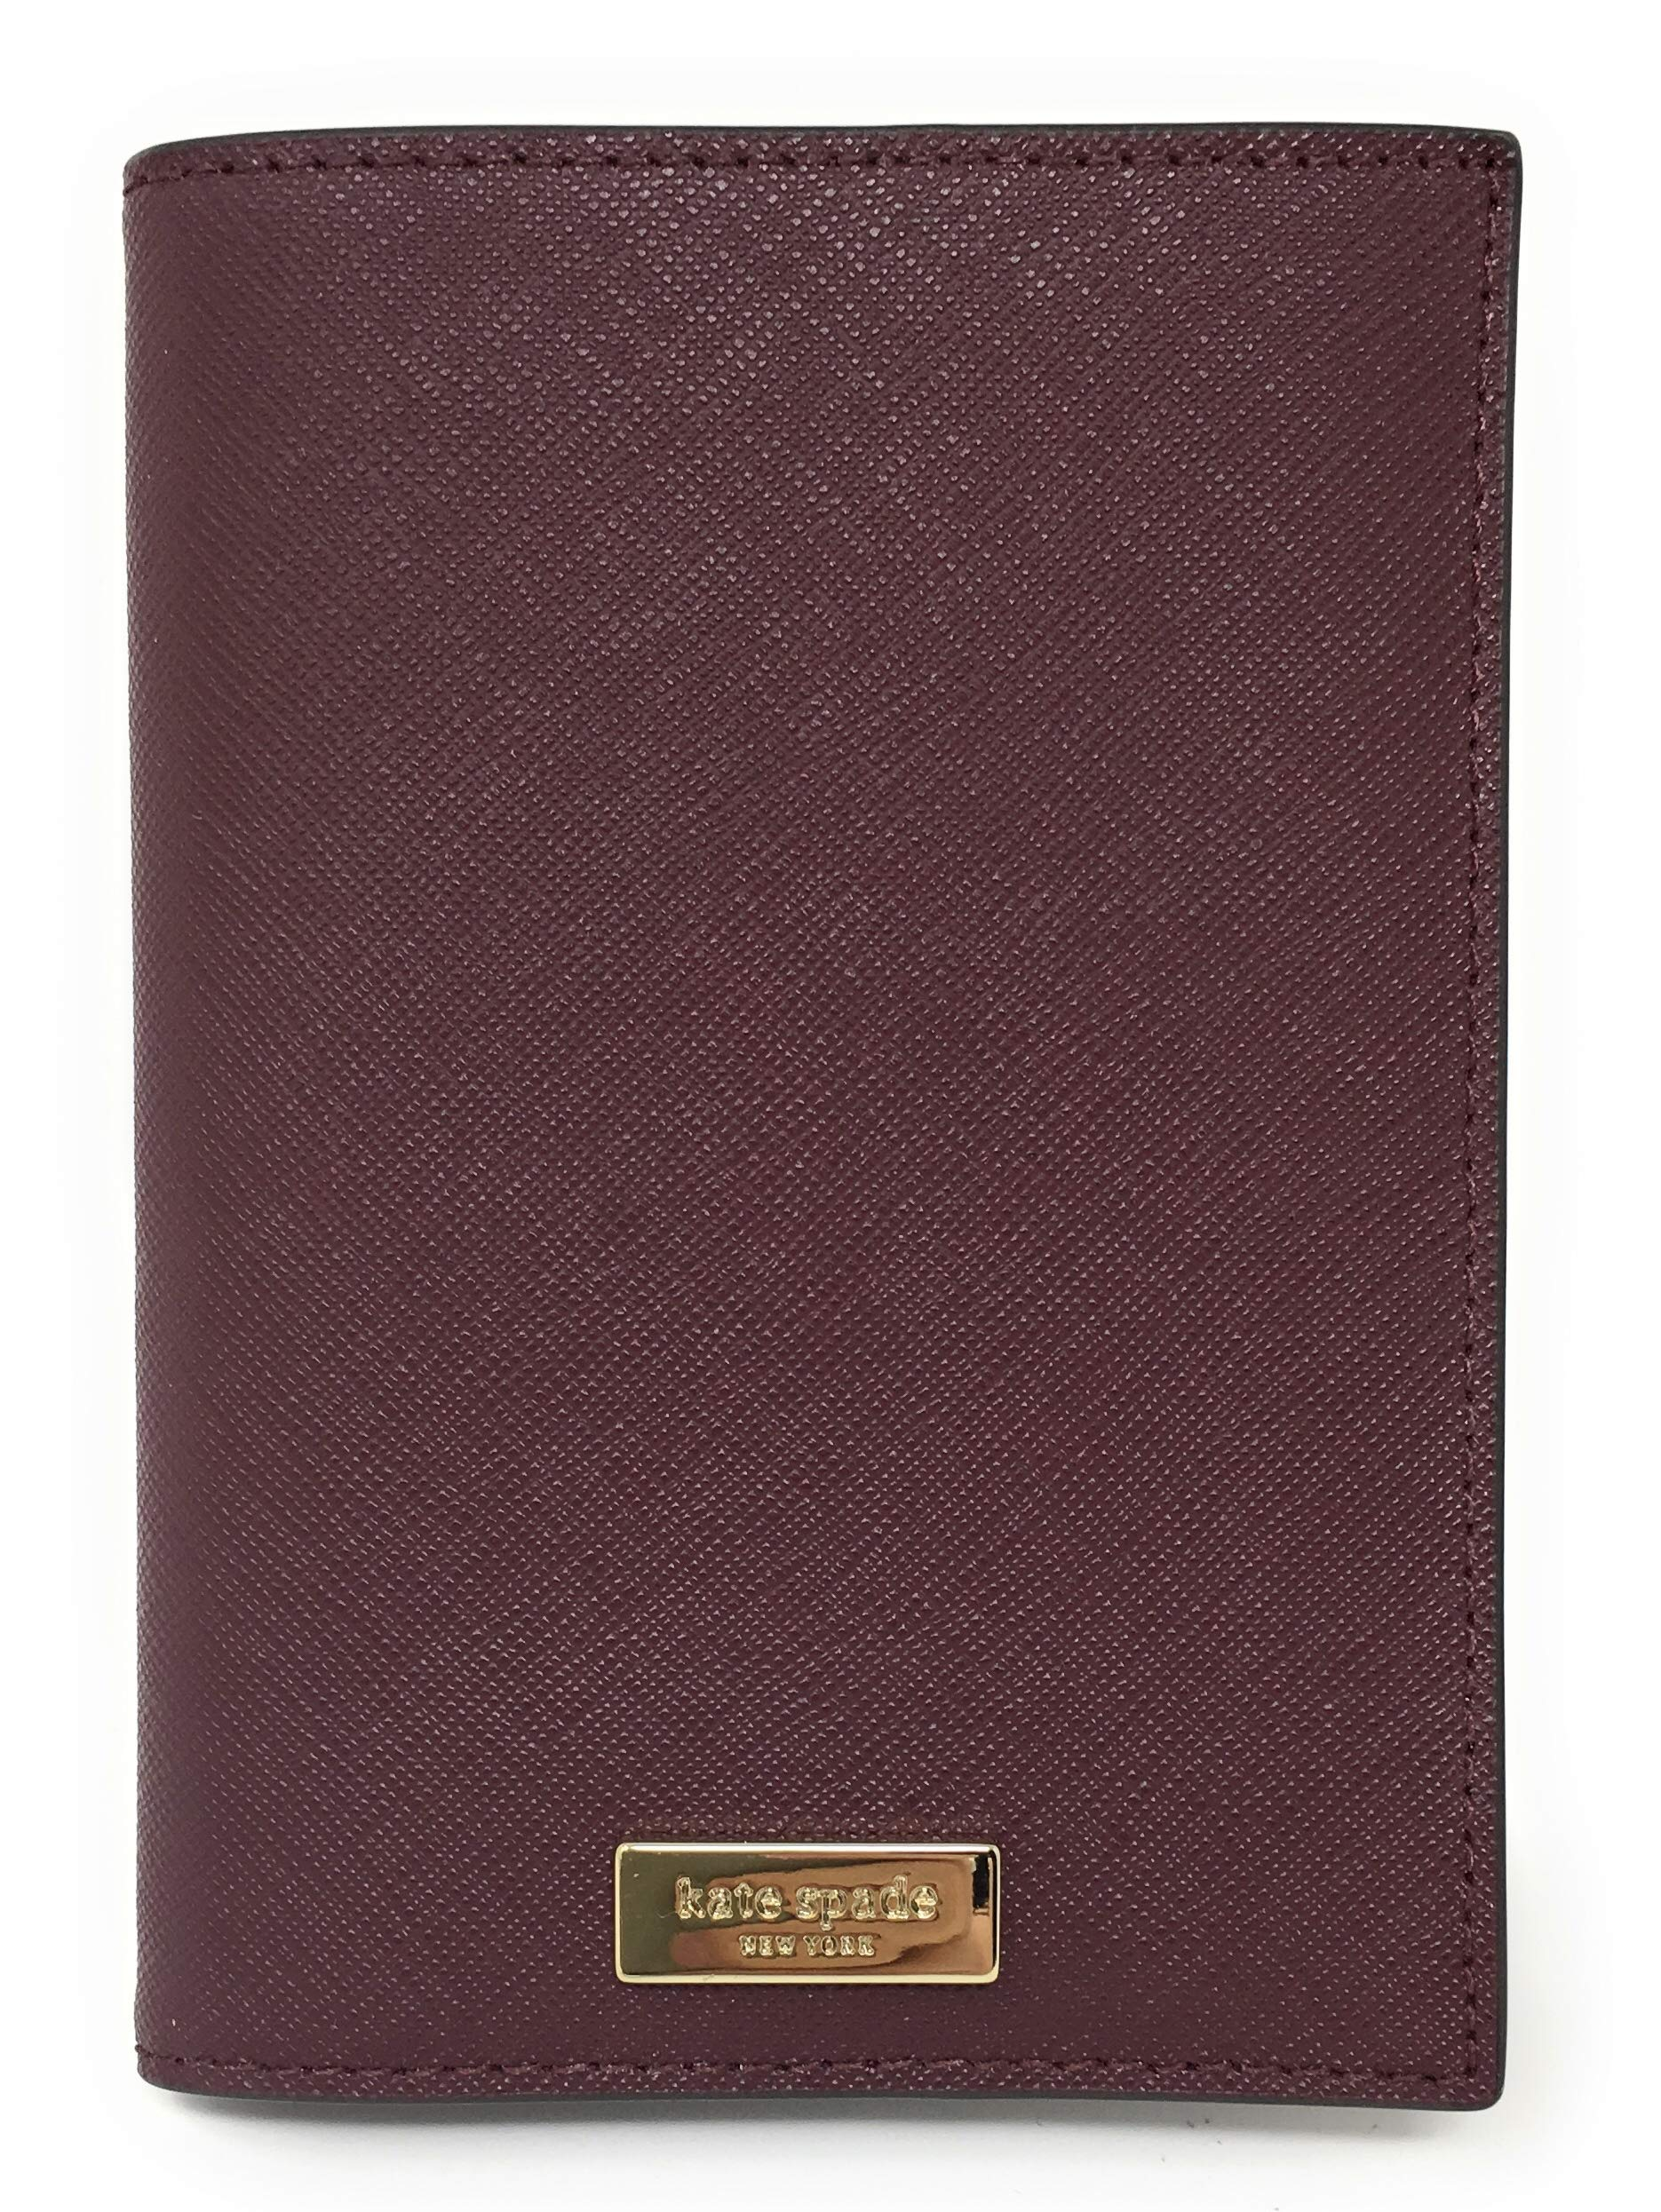 Kate Spade Laurel Way Saffiano Leather Passport Holders (Cherrywood) by Kate Spade New York